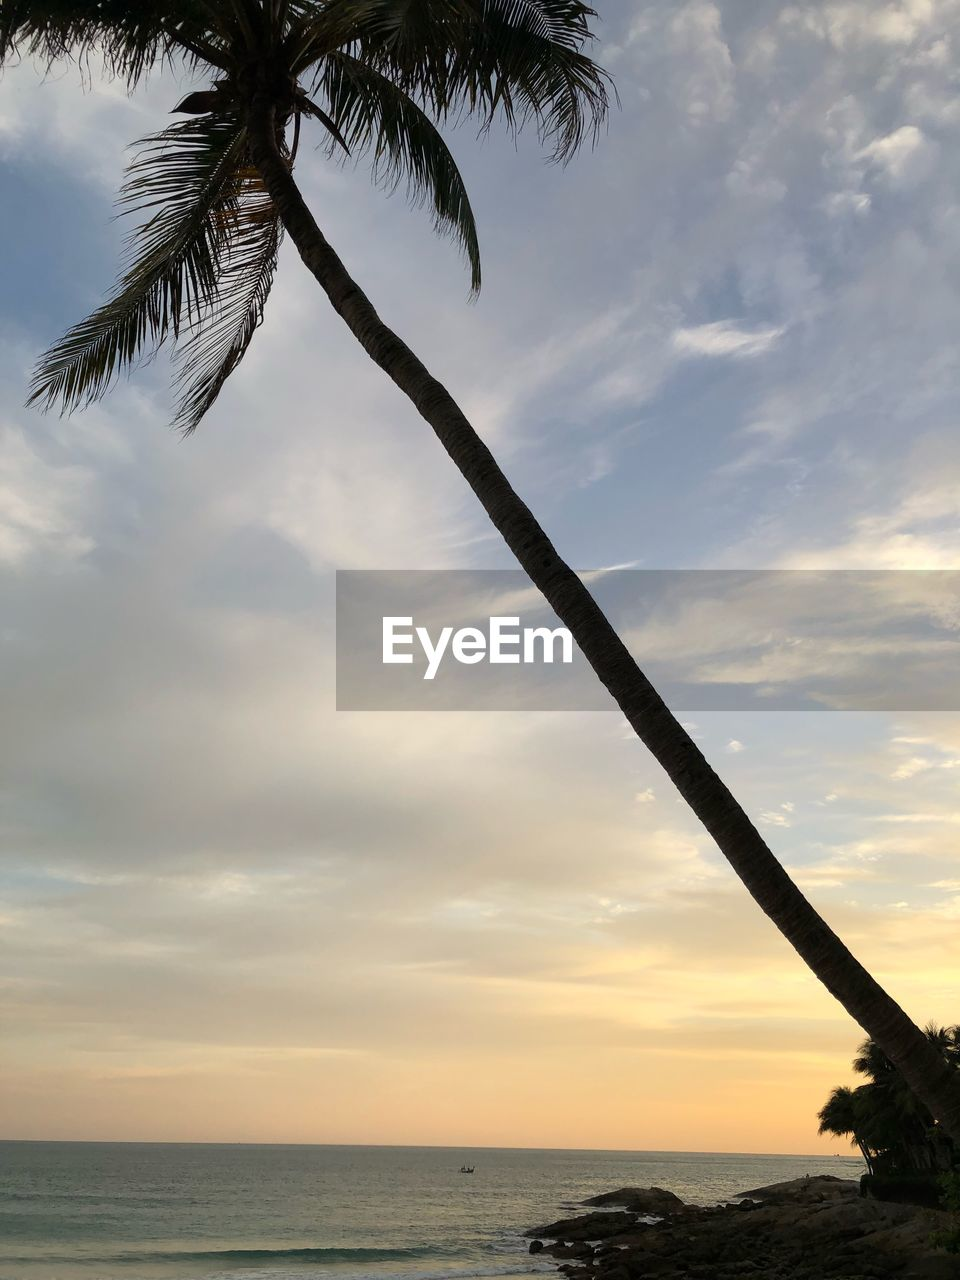 sky, cloud - sky, water, sea, palm tree, beauty in nature, scenics - nature, horizon over water, horizon, tree, sunset, tranquil scene, nature, tropical climate, tranquility, beach, land, no people, plant, outdoors, coconut palm tree, palm leaf